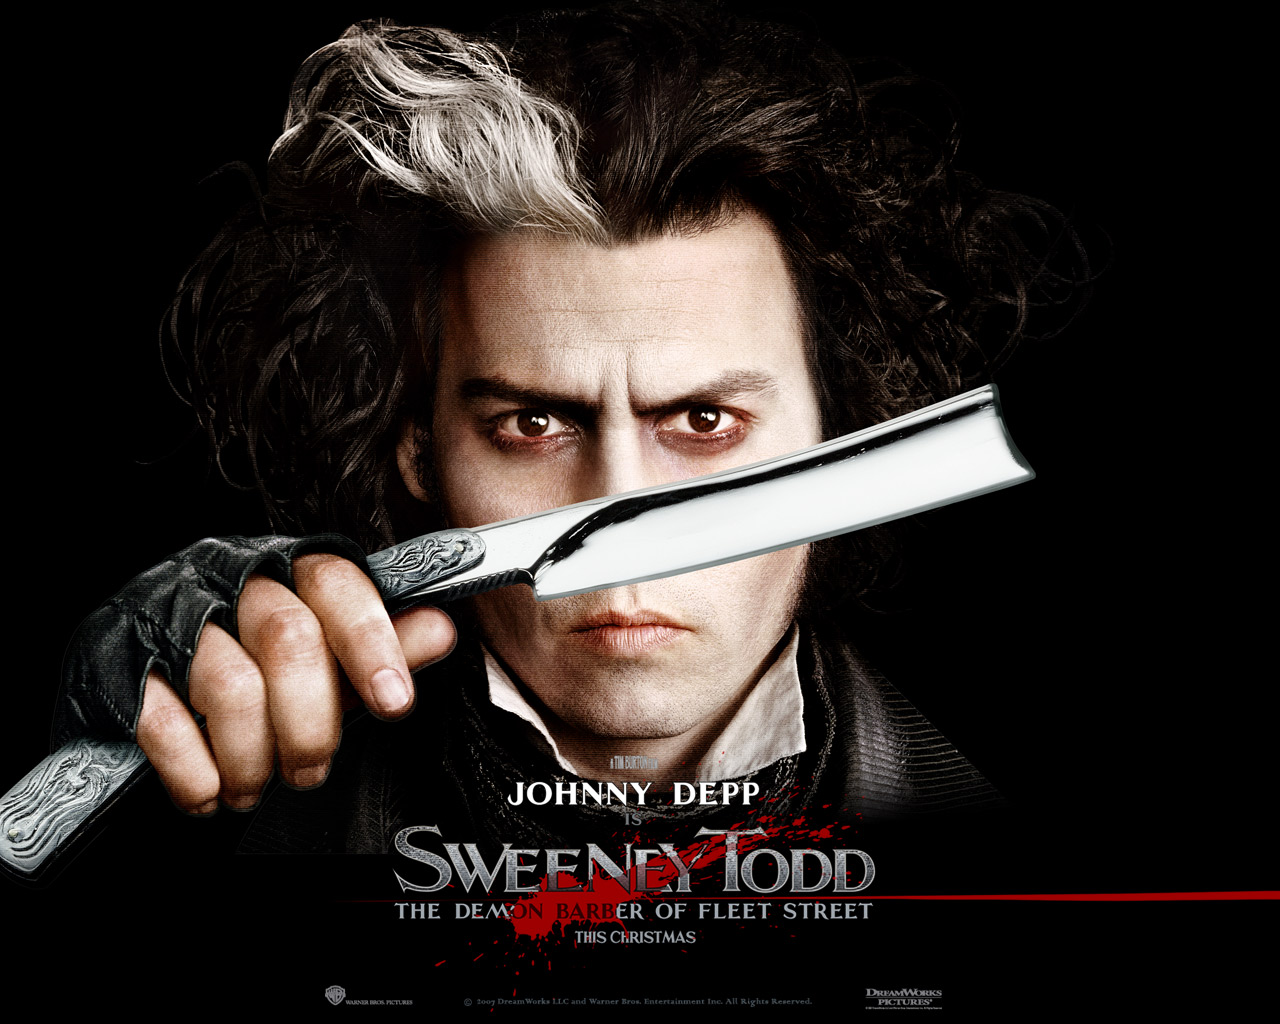 Sweeney Todd is among the Career Best Performances of Johnny Depp